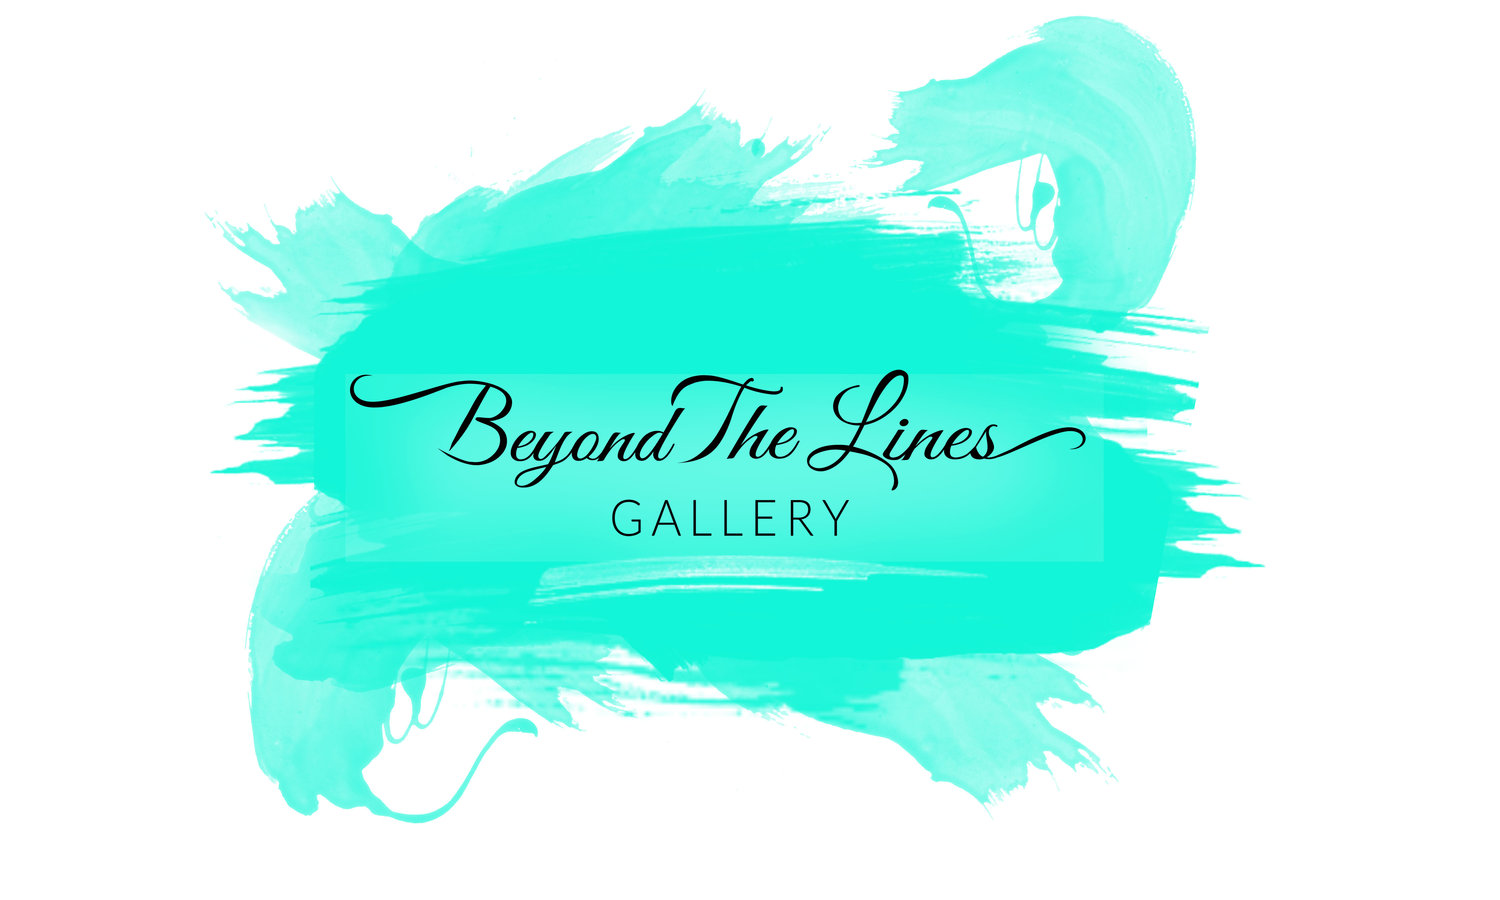 Beyond The Lines Gallery